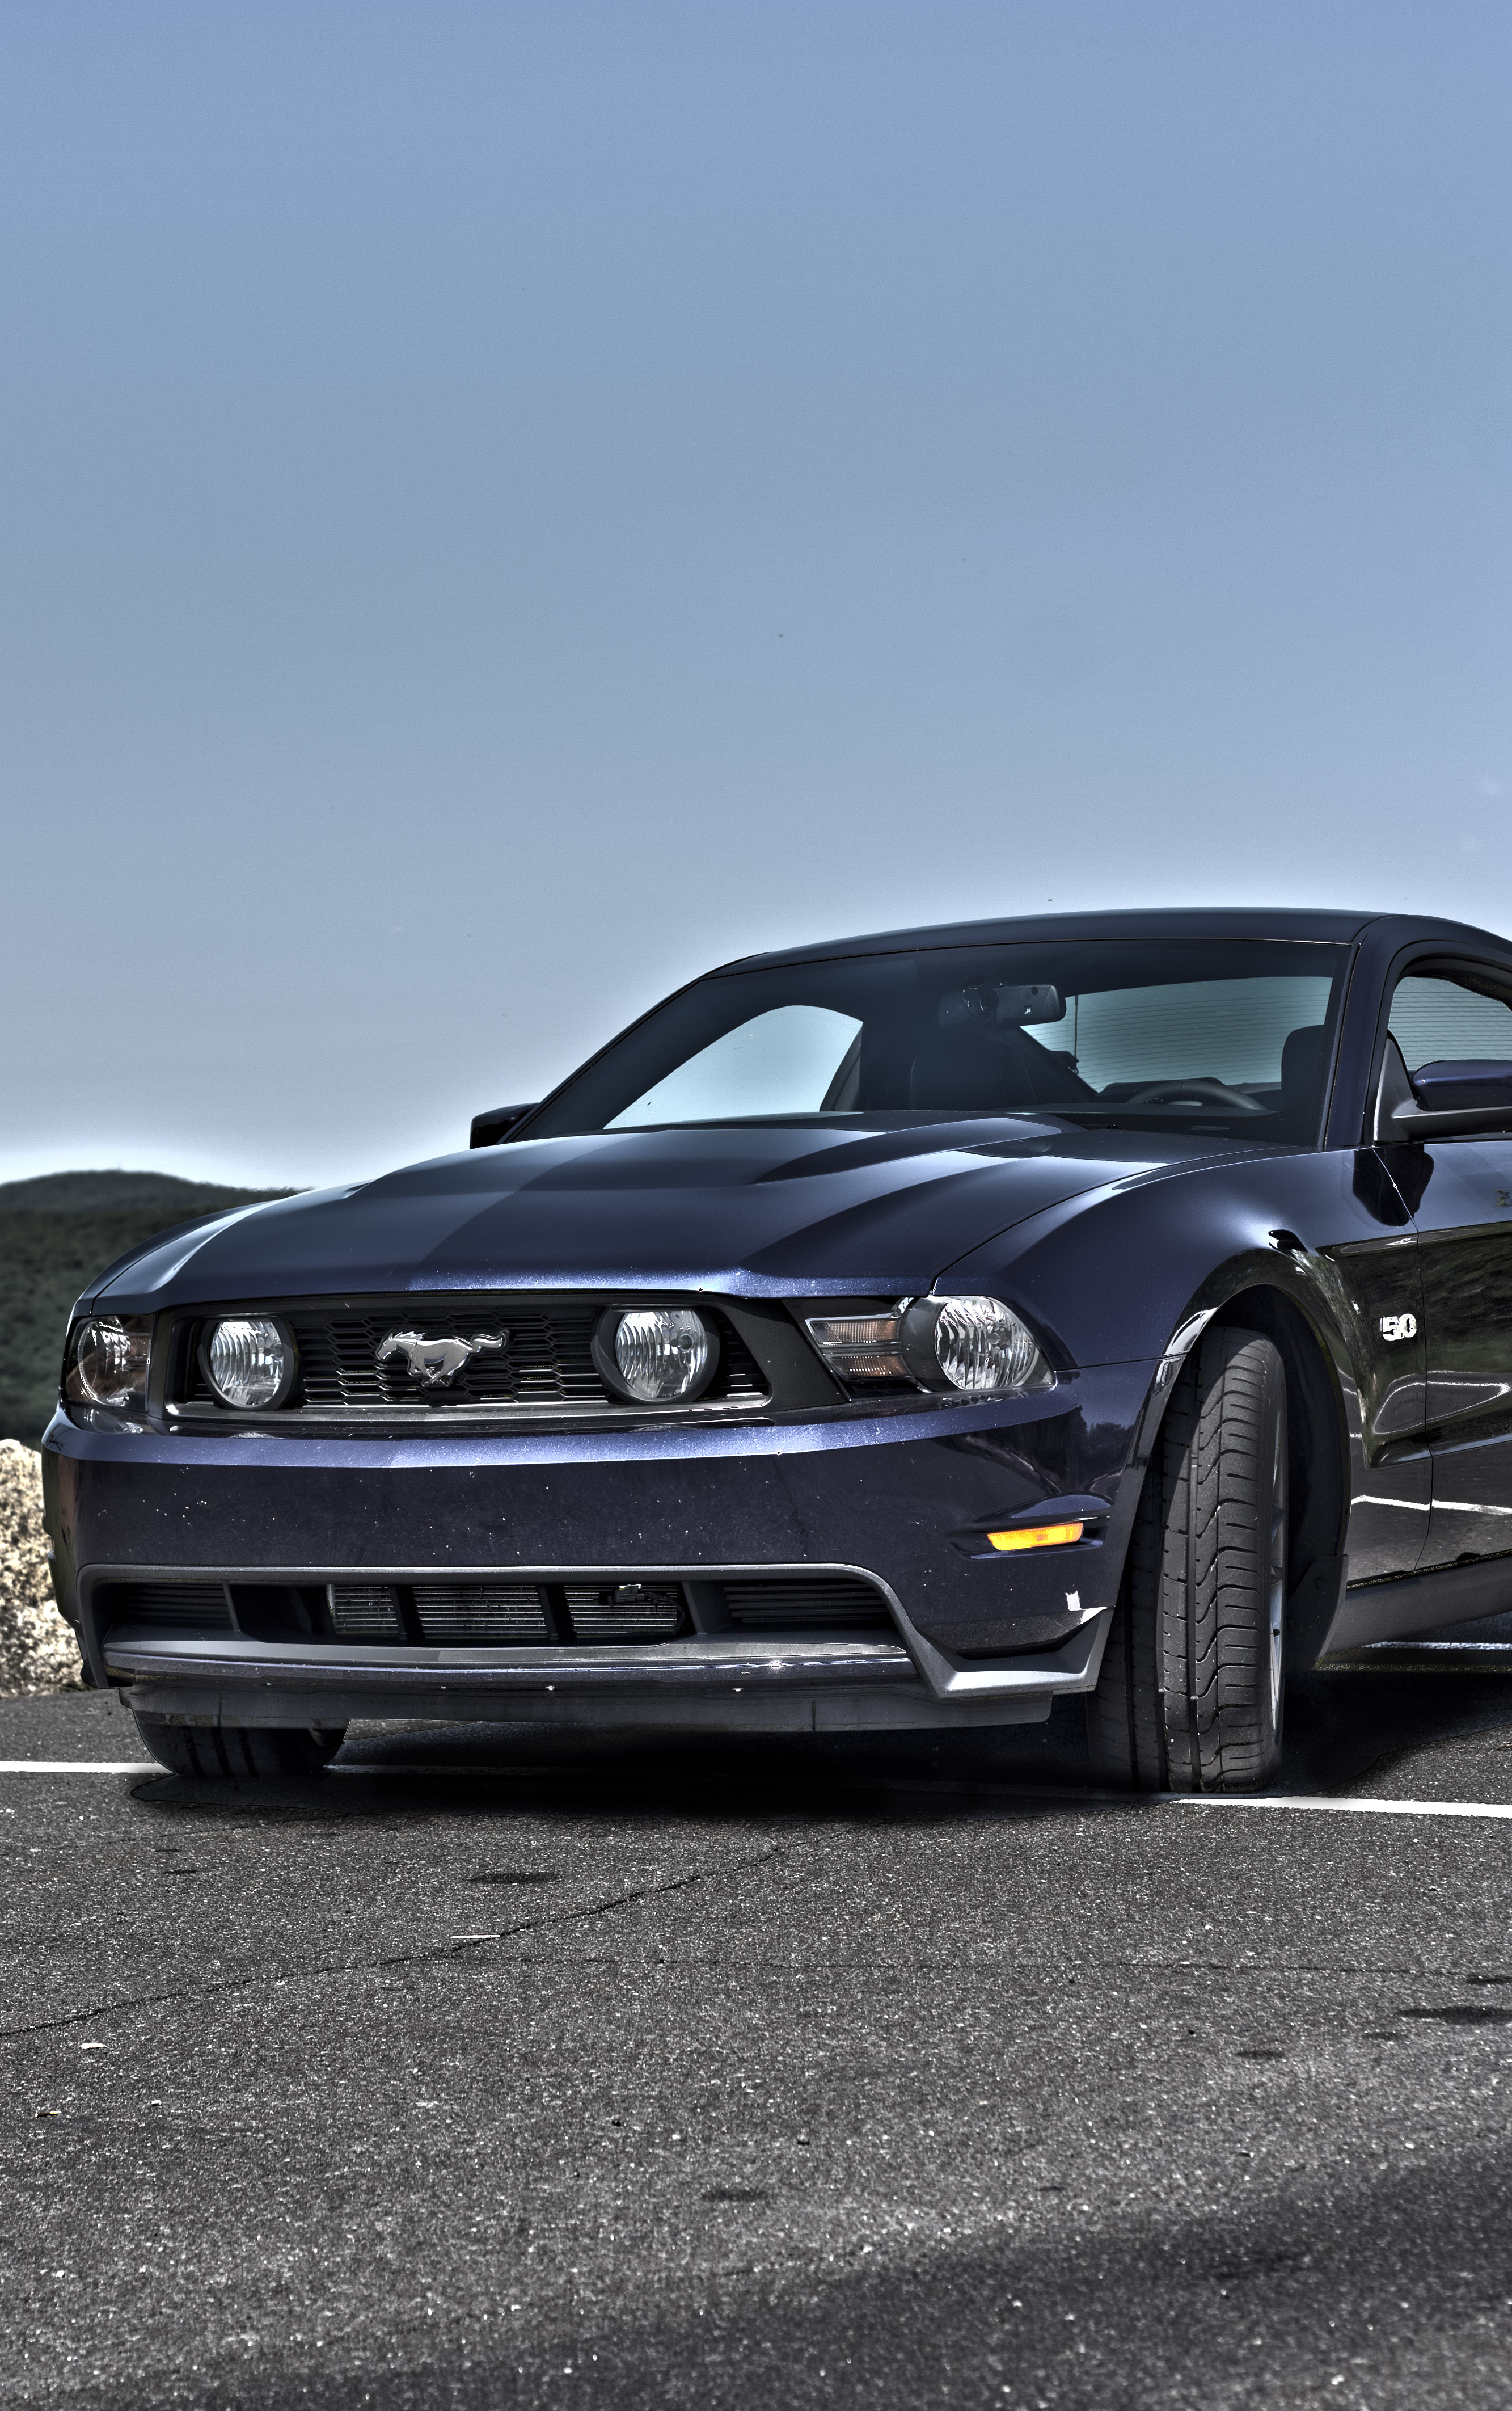 Tags: 2011 ford mustang gt 5.0